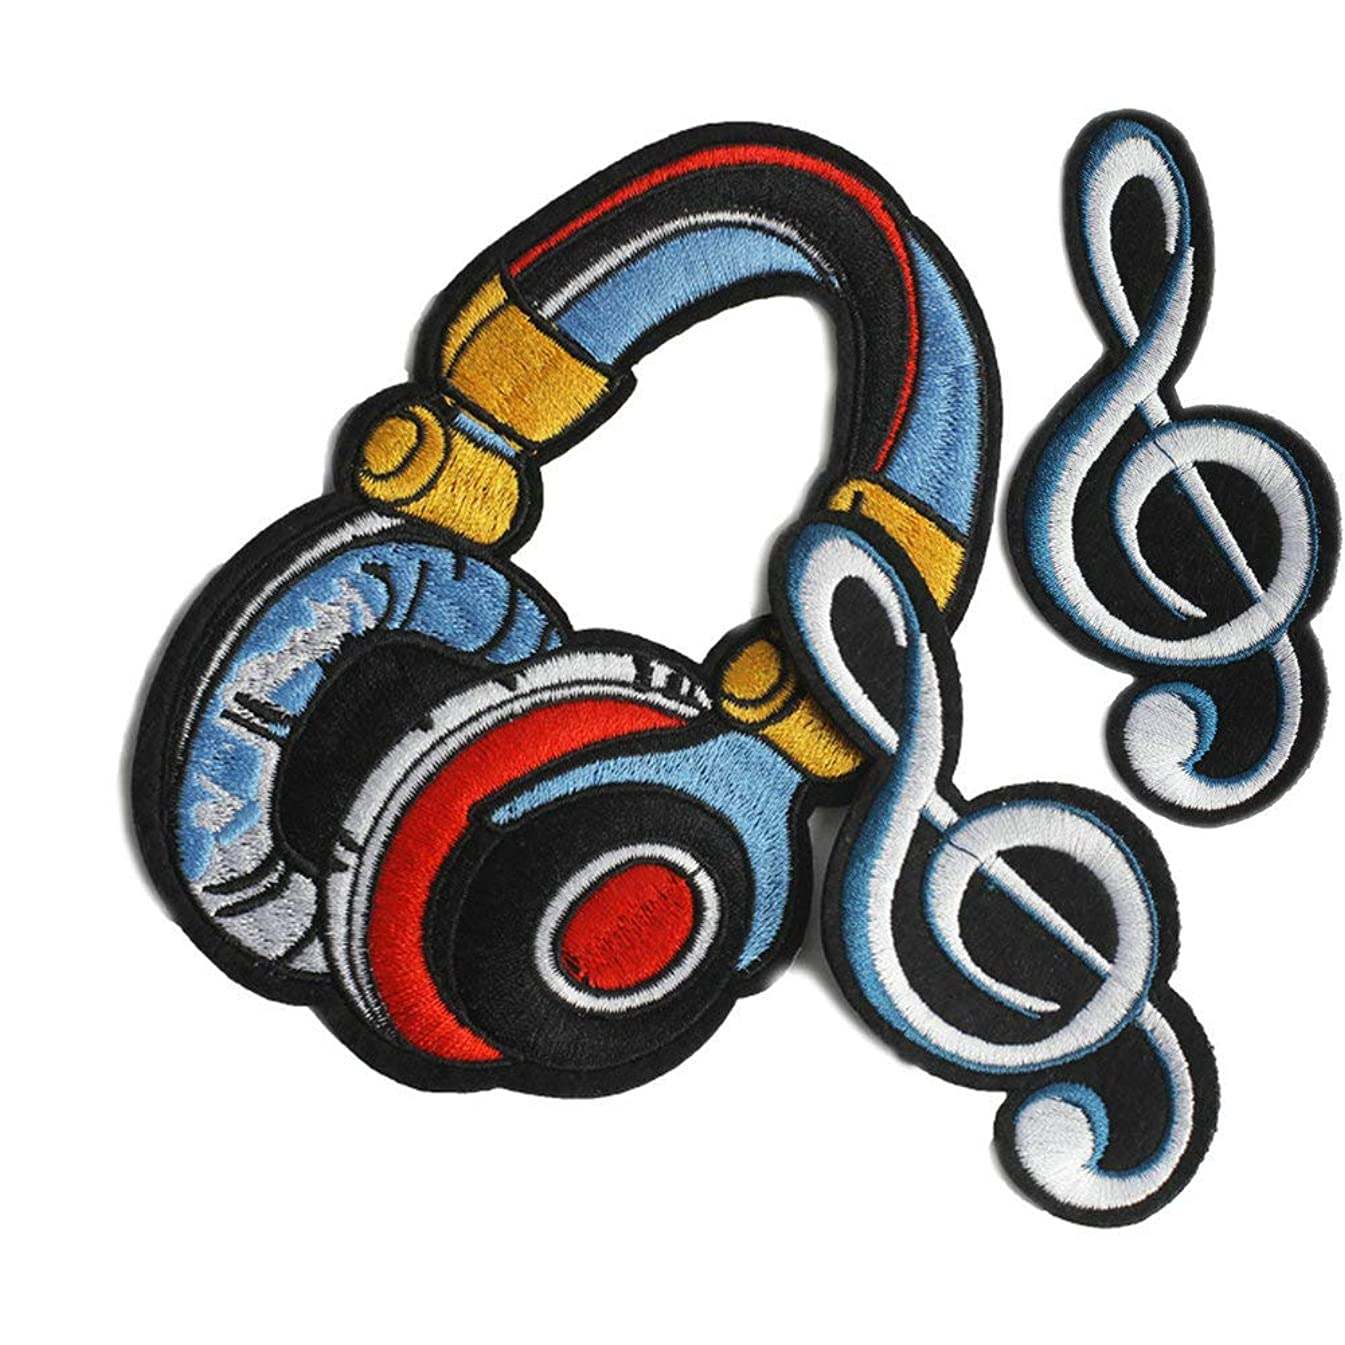 3 Pcs Headset Earphone Music Note Iron on Patches Embroidered Patch for Clothes Applique Sticker Badge